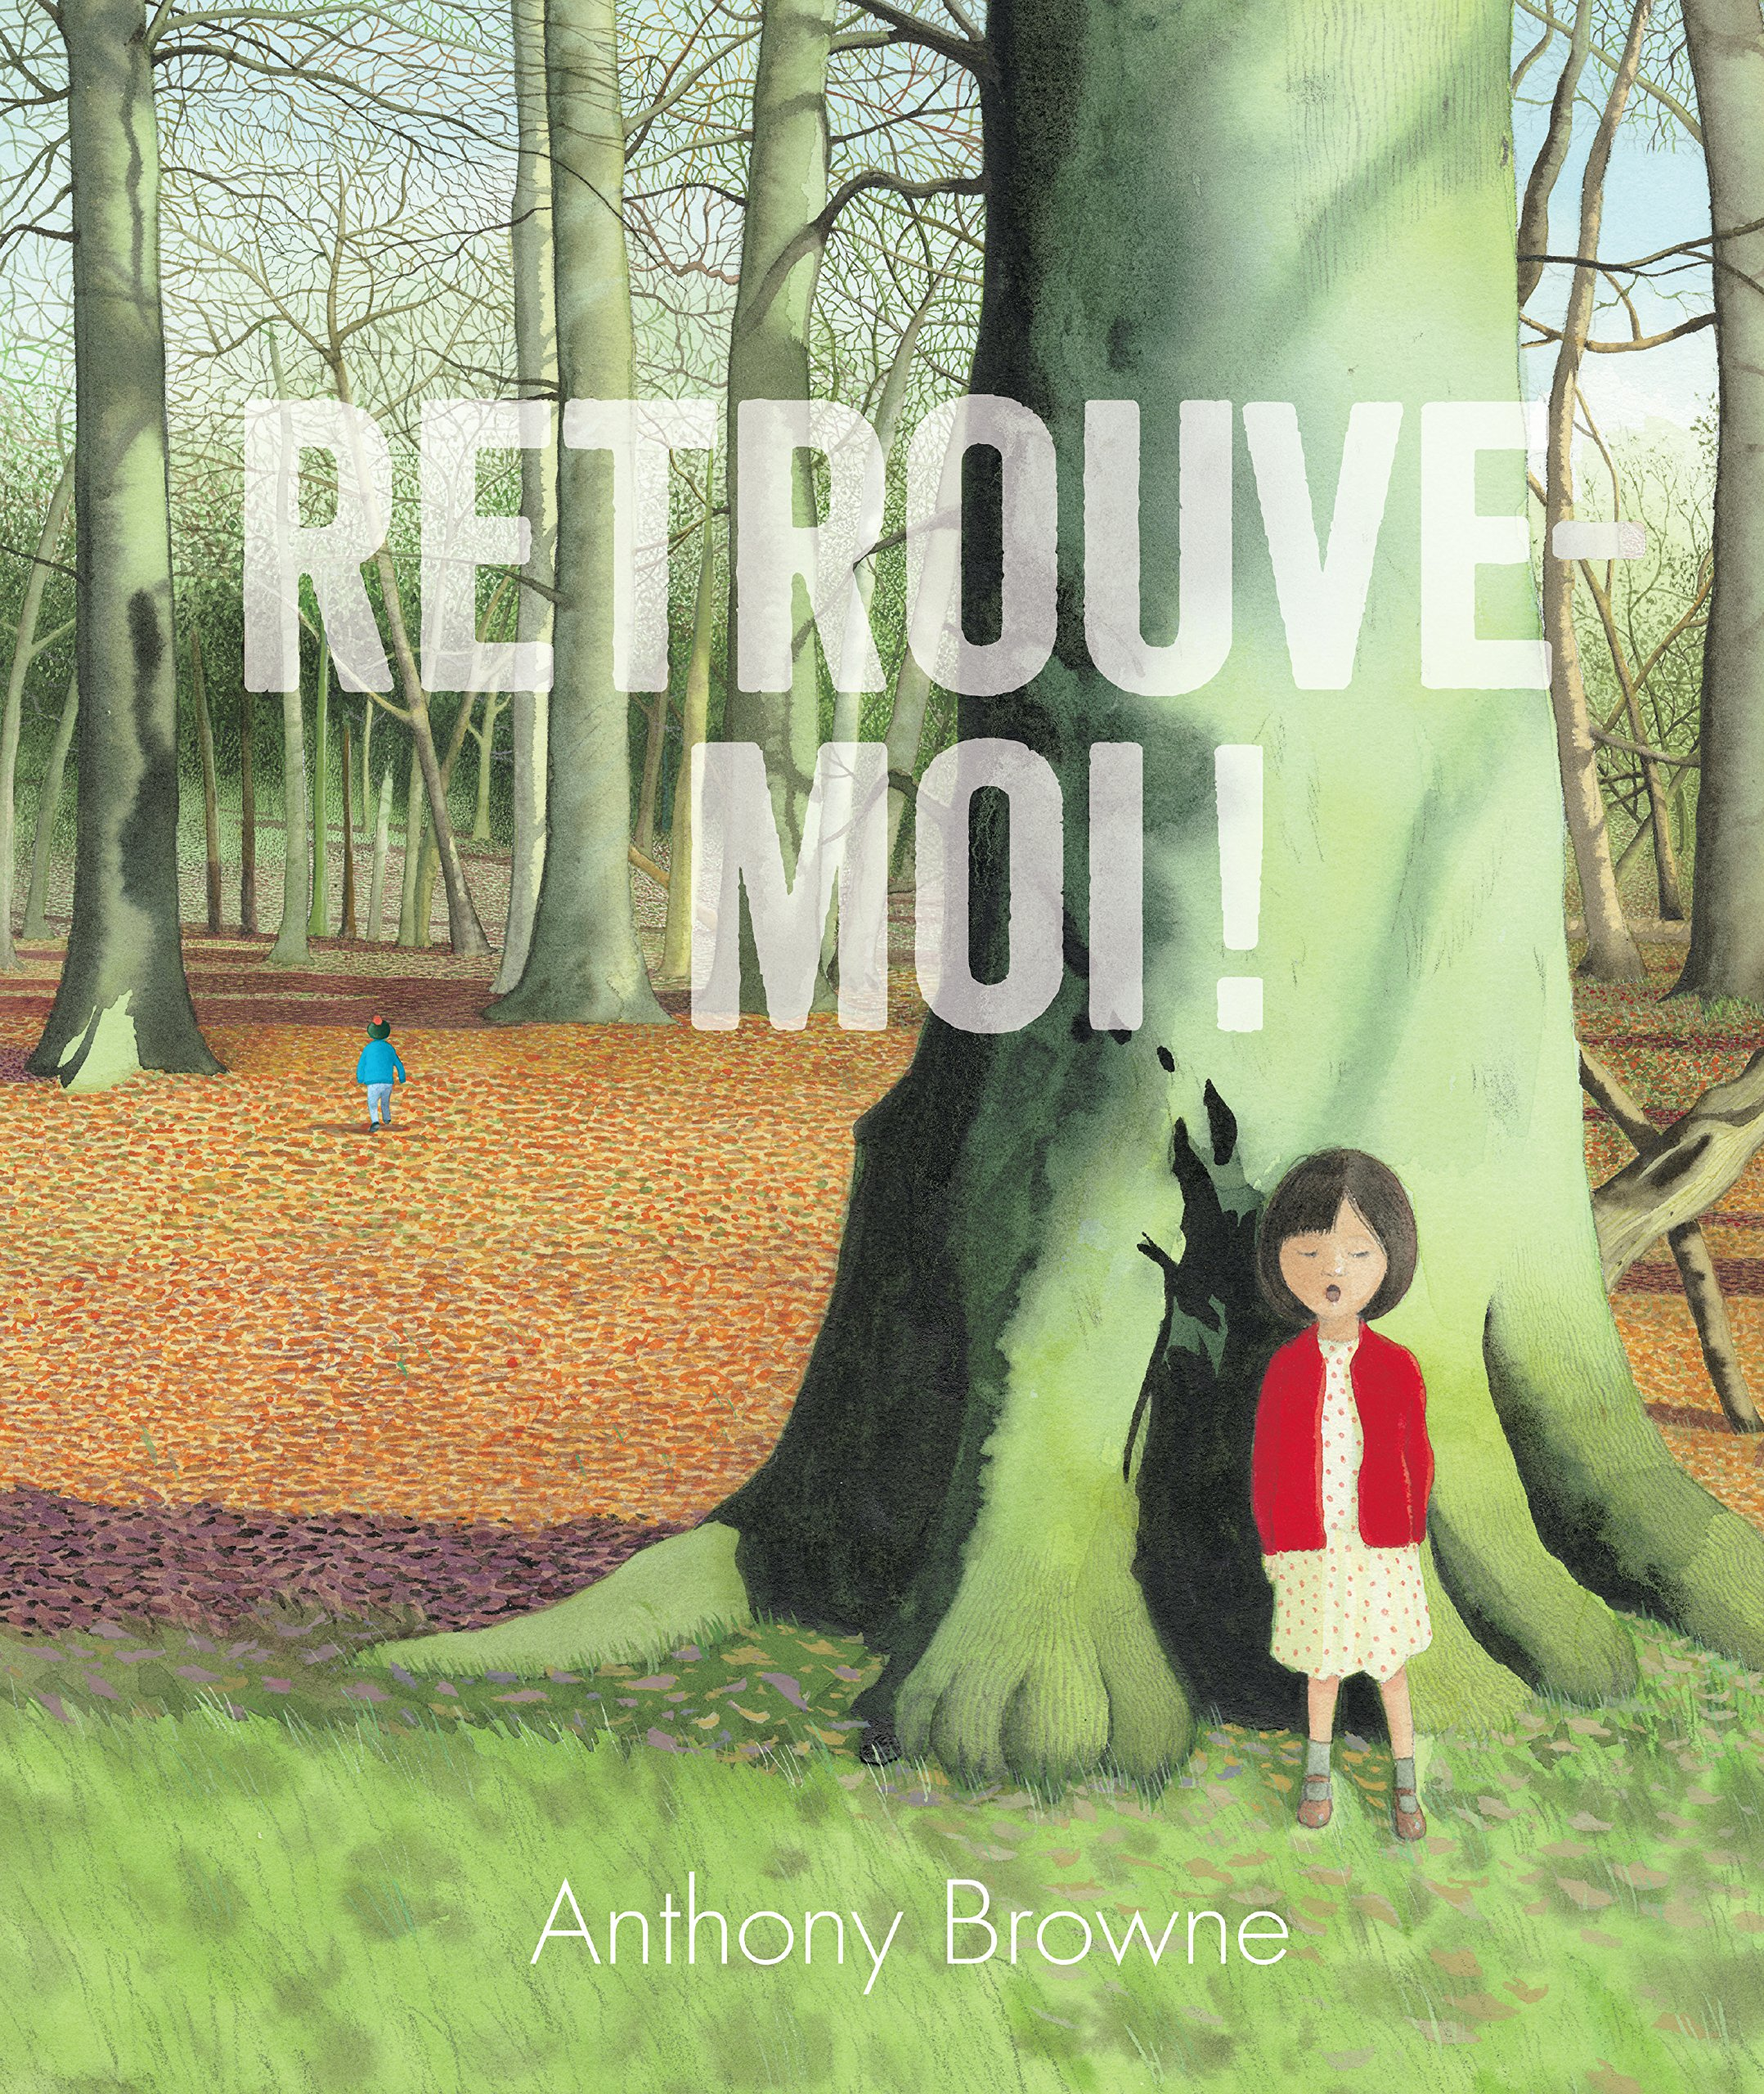 The Best Retrouve Moi Anthony Browne Background